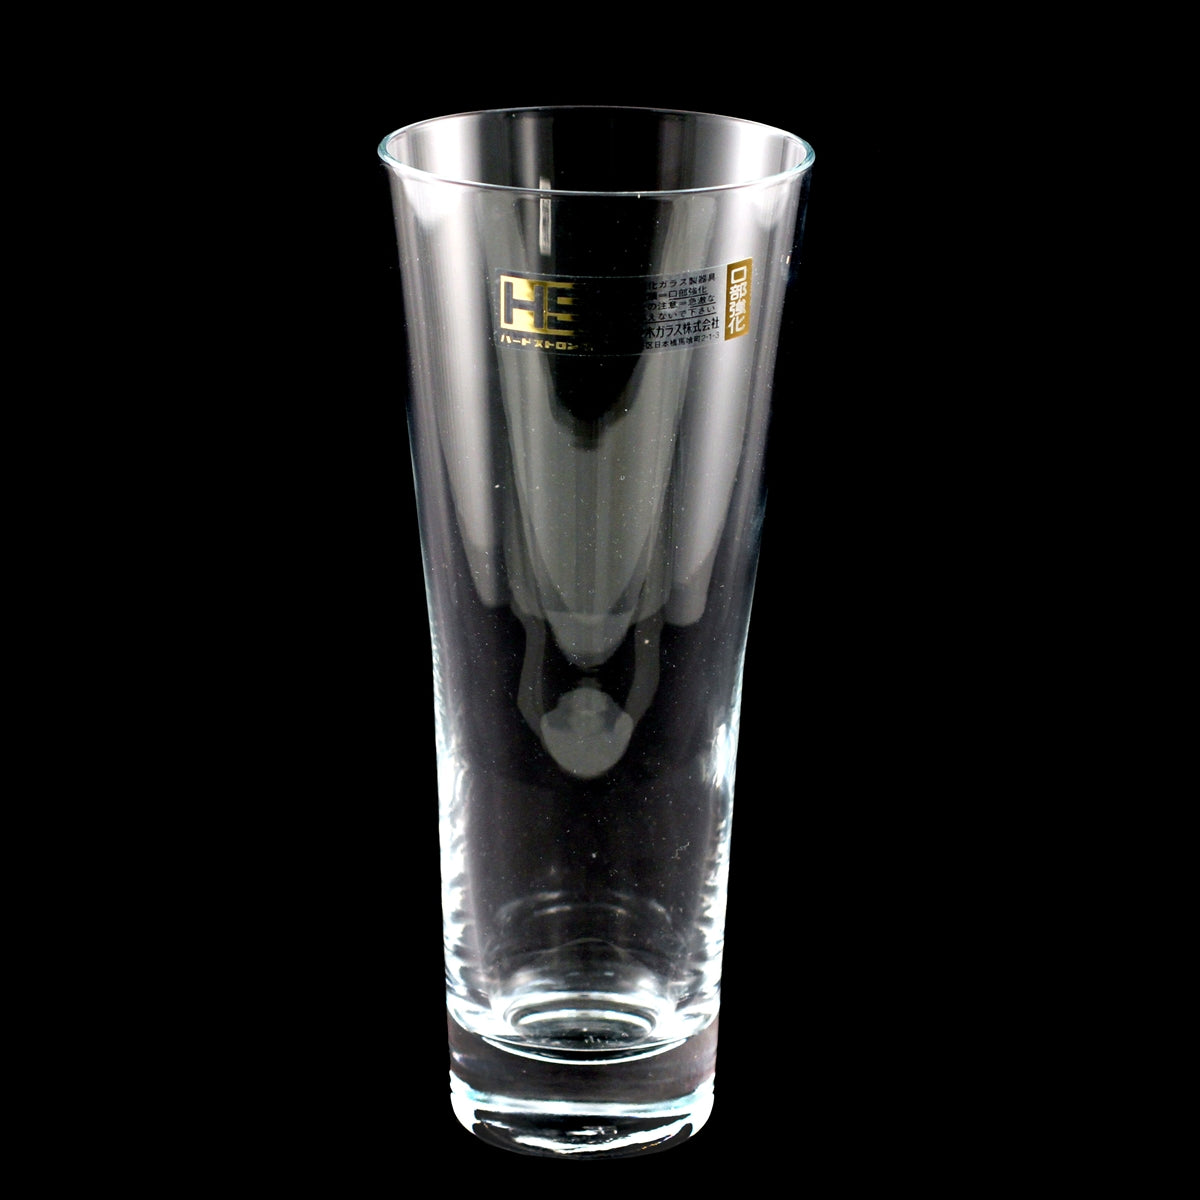 Toyo-Sasaki Hard Strong (HS) Tall Glass Cup 10.5 fl oz